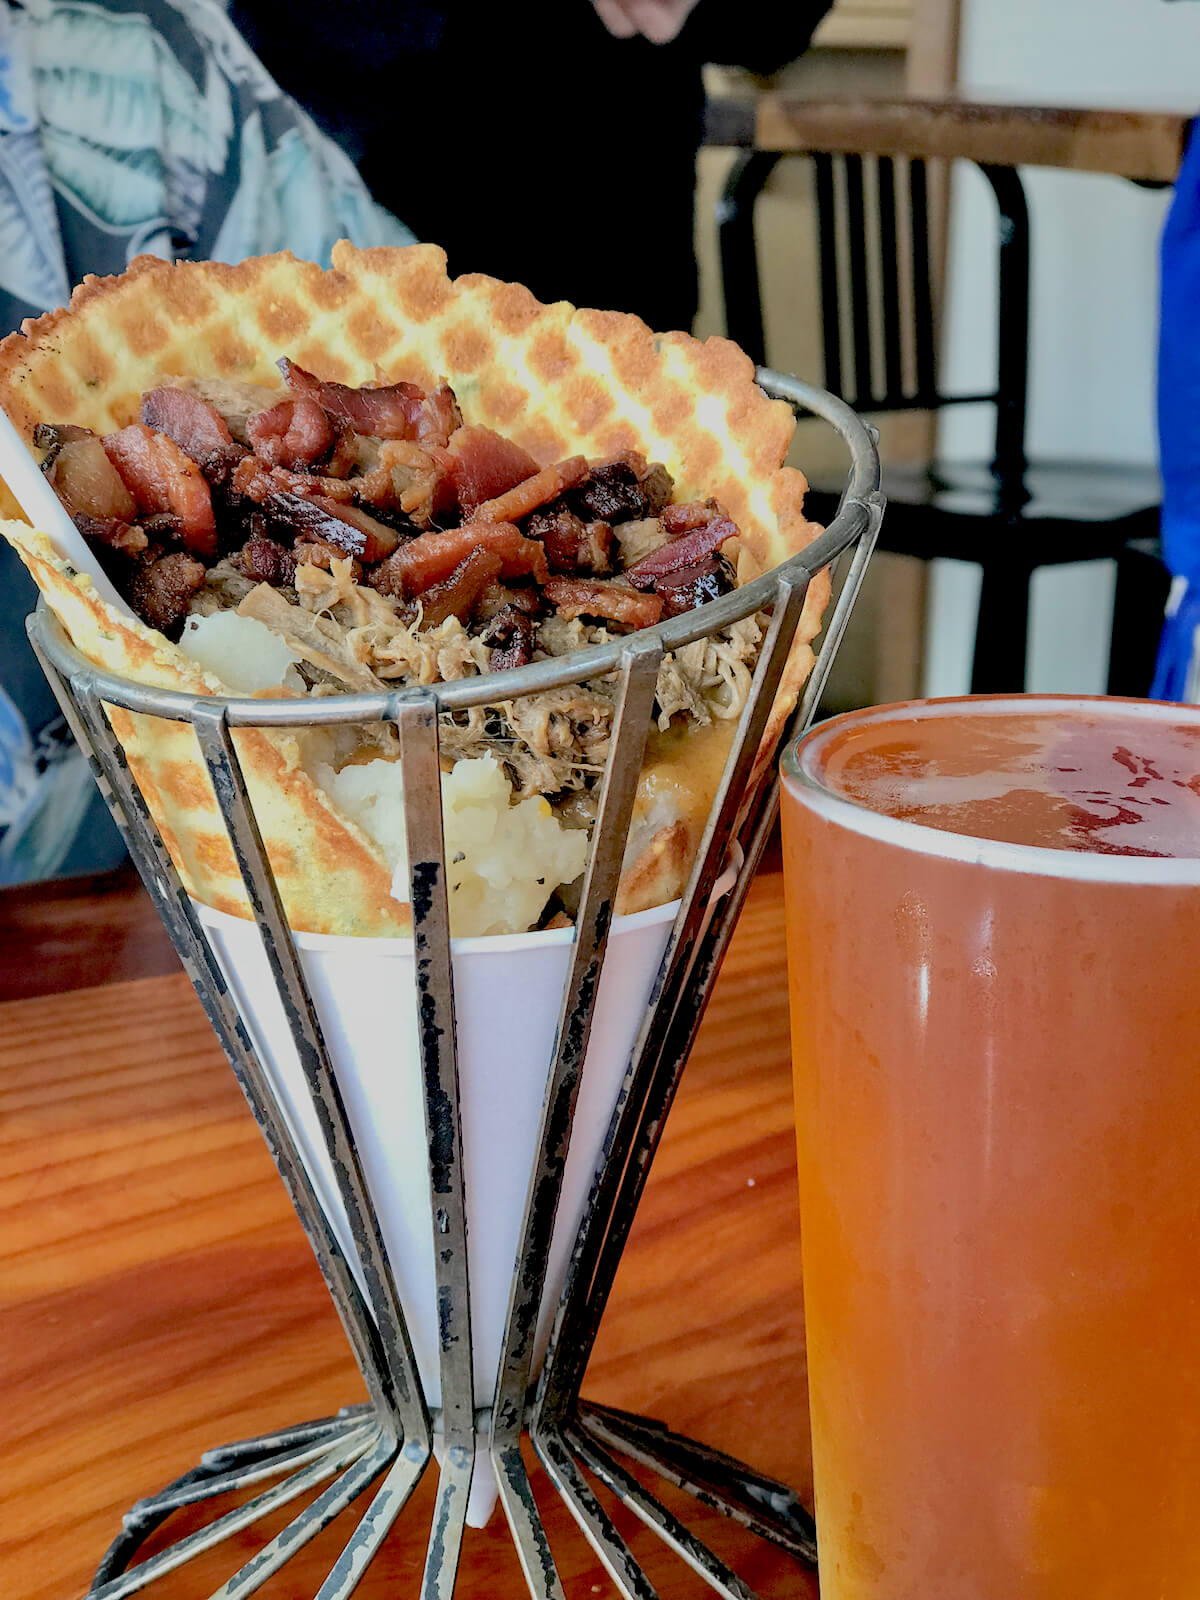 Lighthouse Grill: Savory Waffle Cone with Mashed Potatoes, Pulled Pork and Bacon!